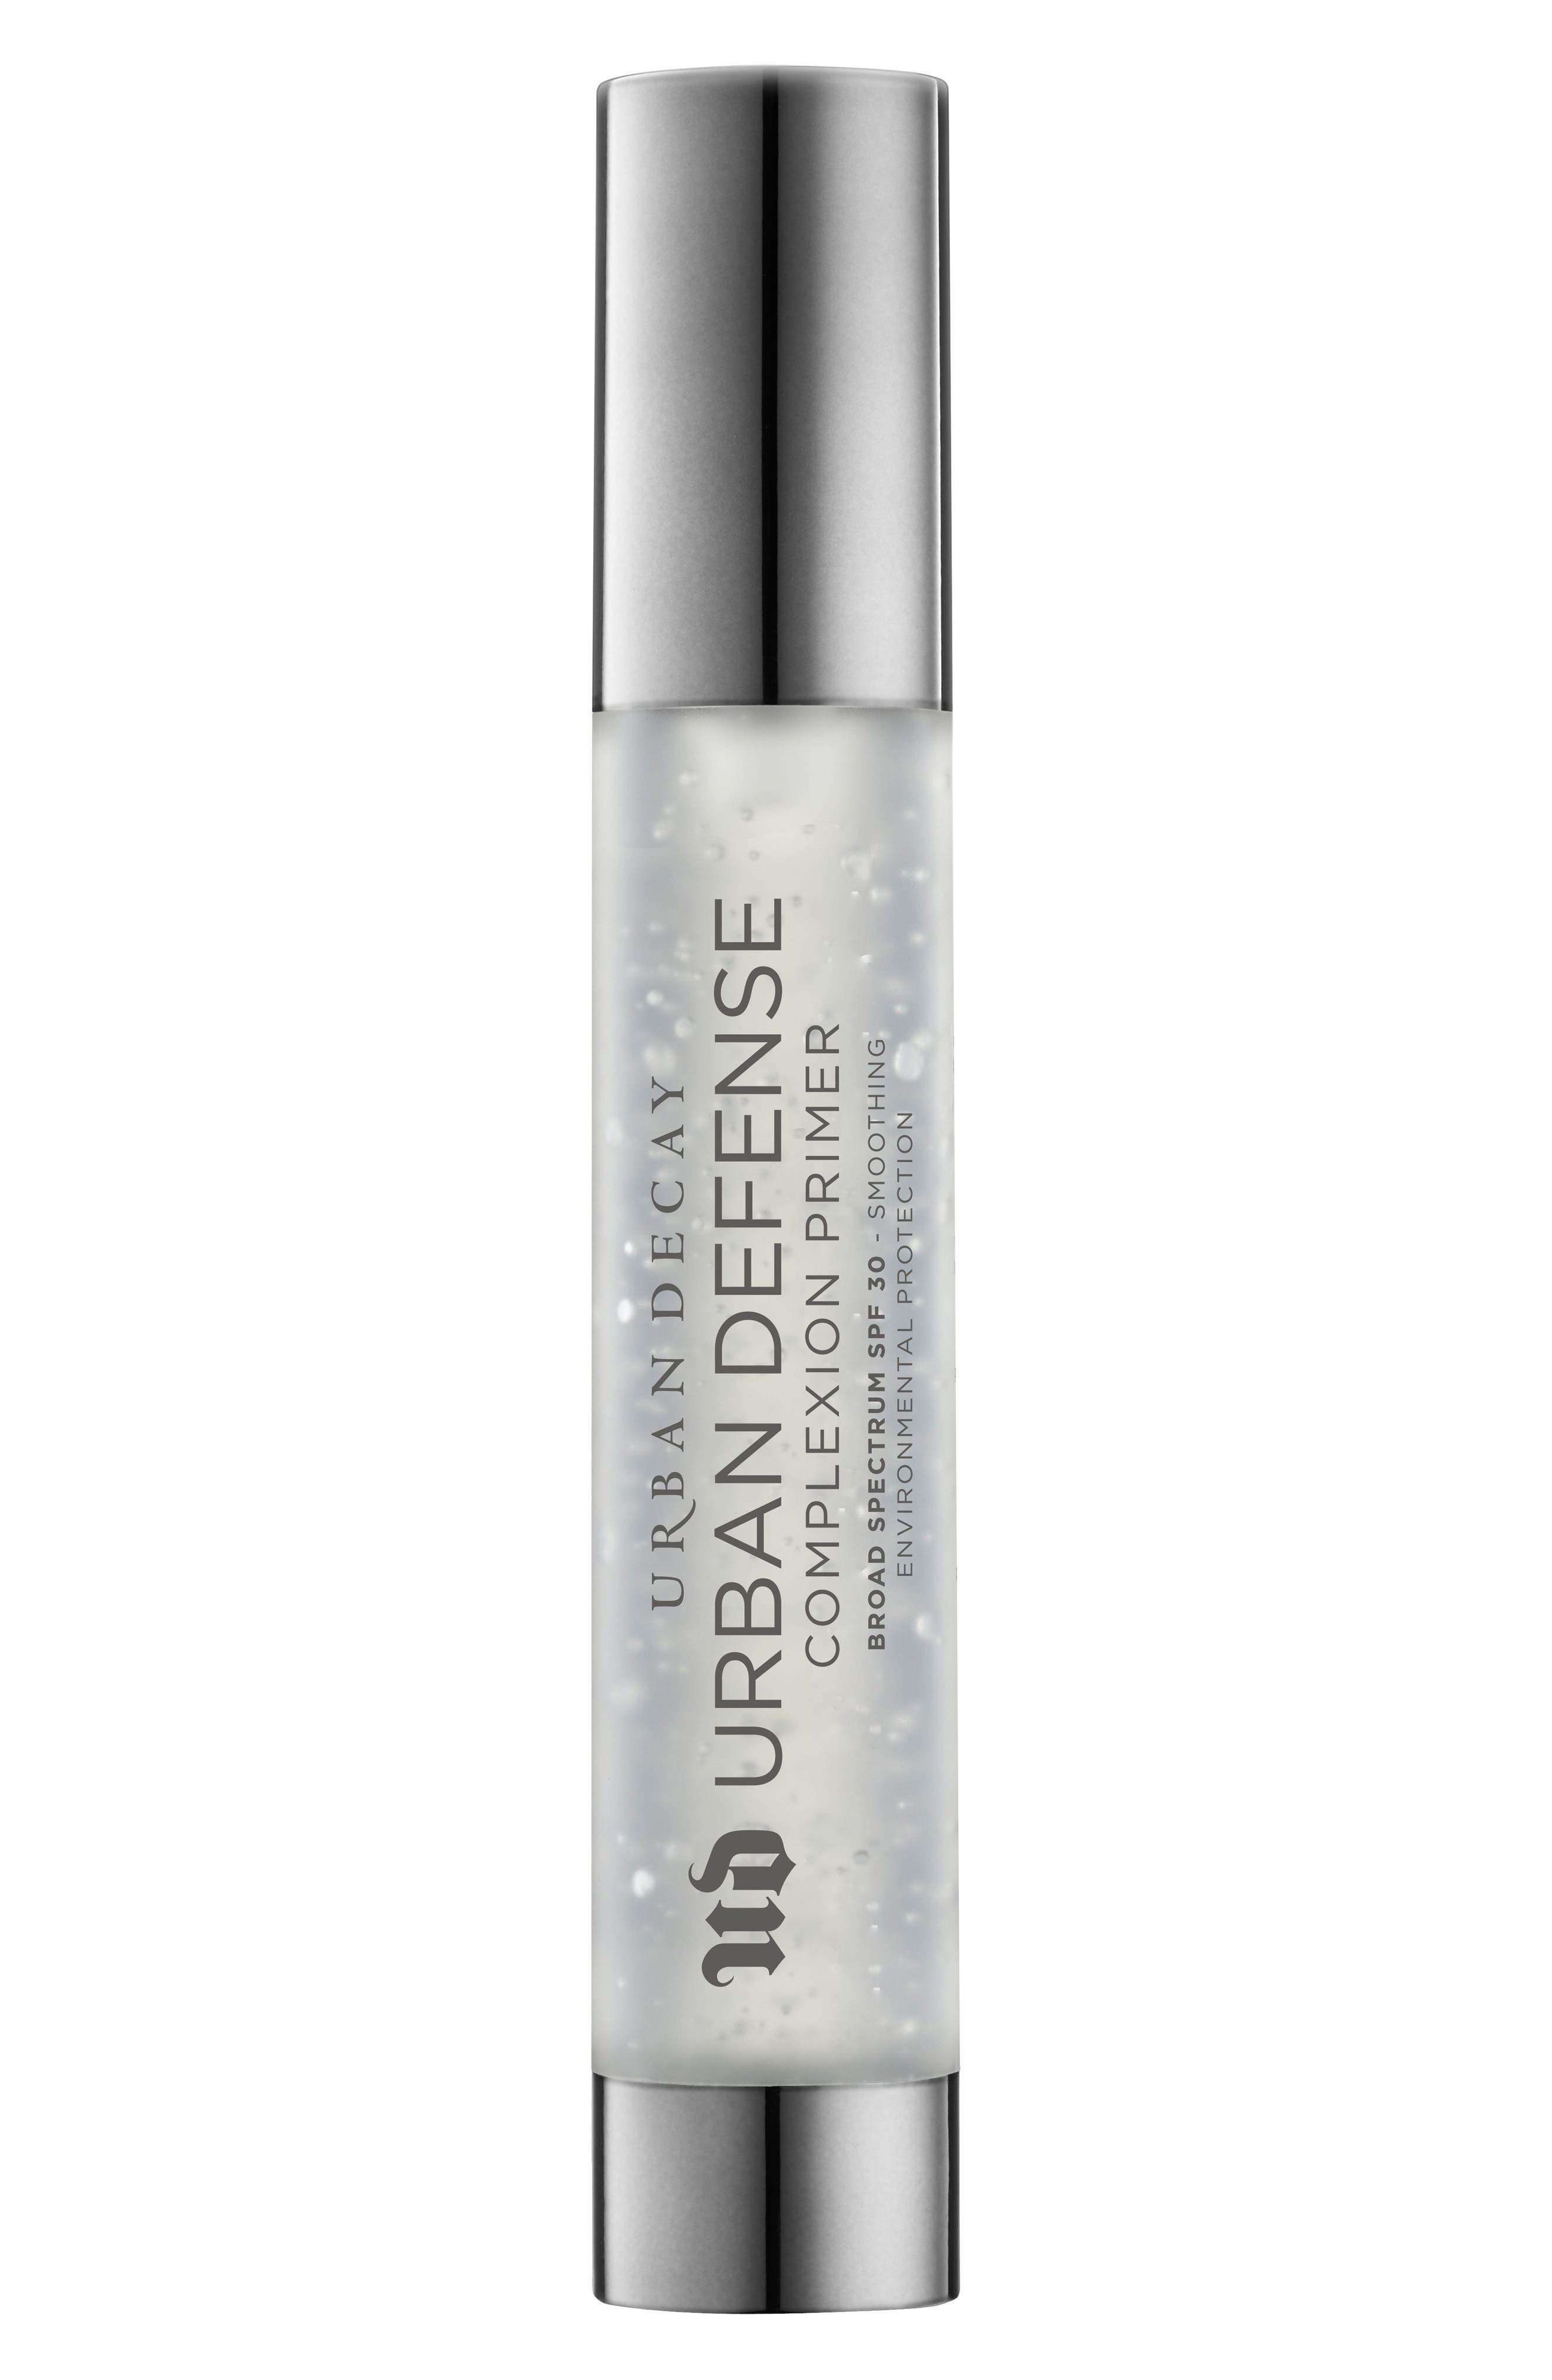 Main Image - Urban Decay Urban Defense Complexion Primer Broad Spectrum SPF 30